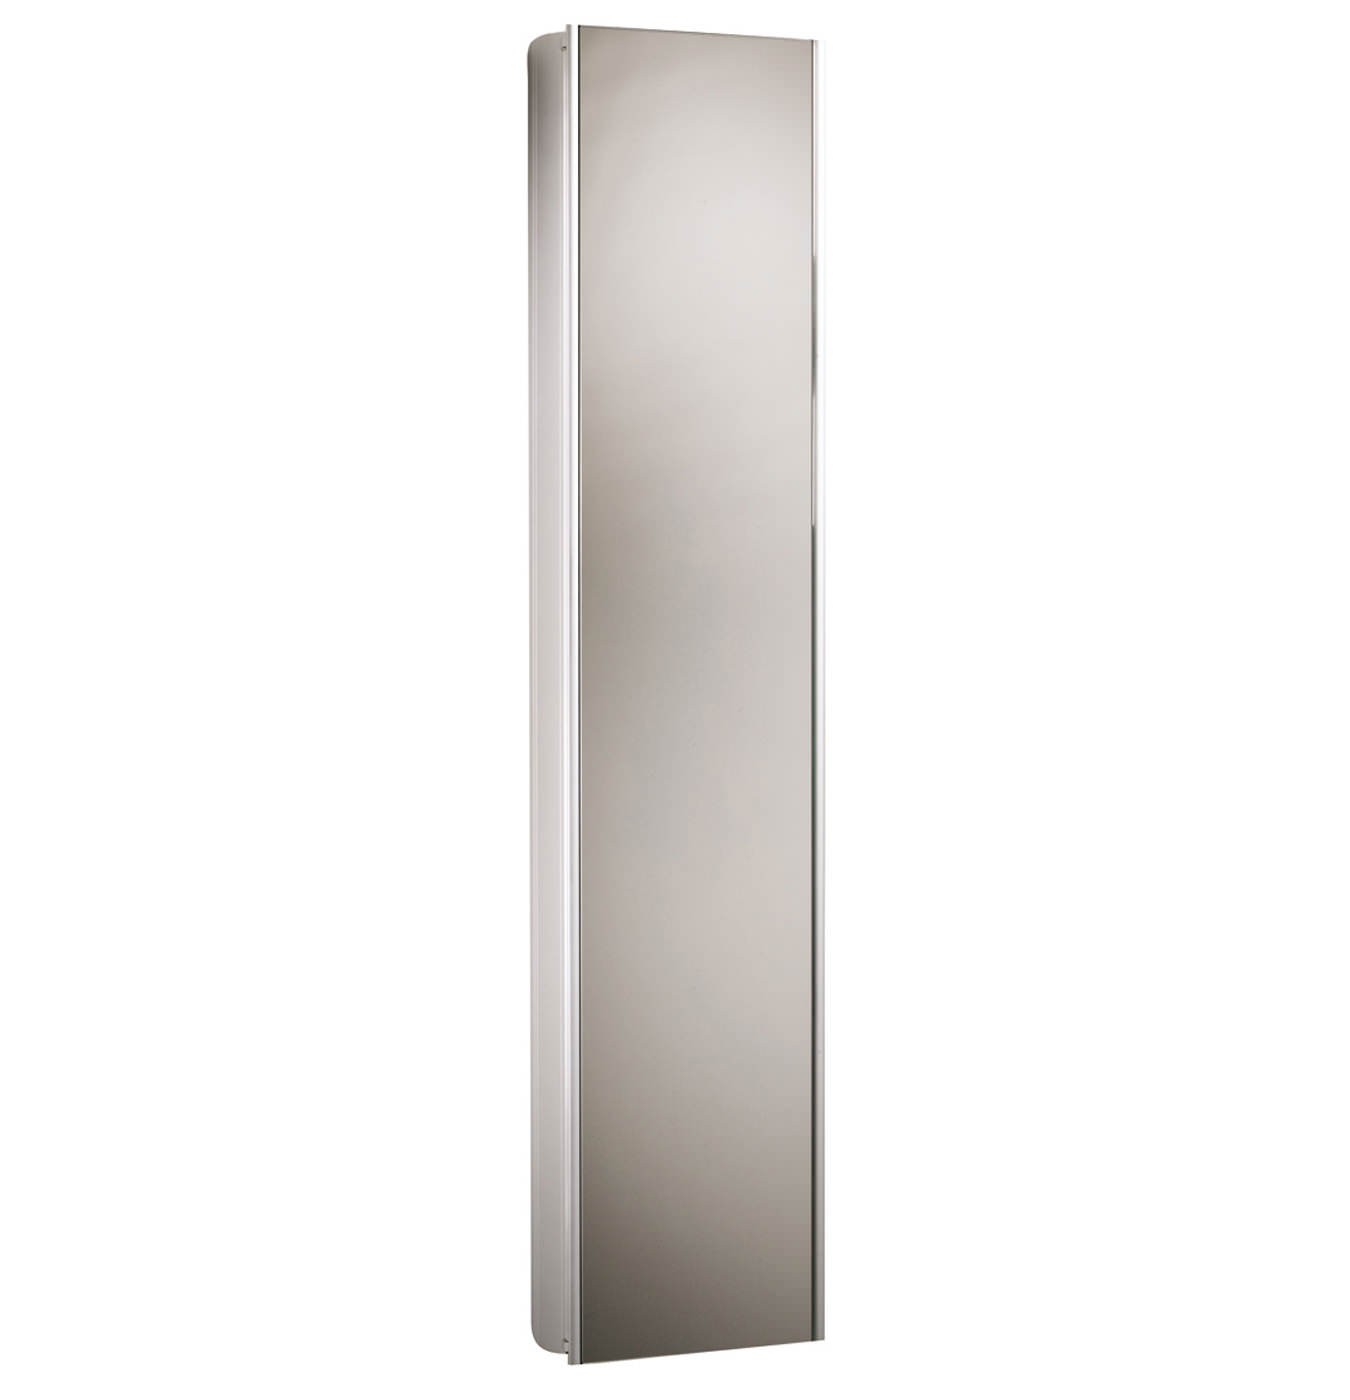 Roper Rhodes Ascension Reference Tall Mirror Door Wall Cabinet 315mm intended for measurements 1350 X 1400